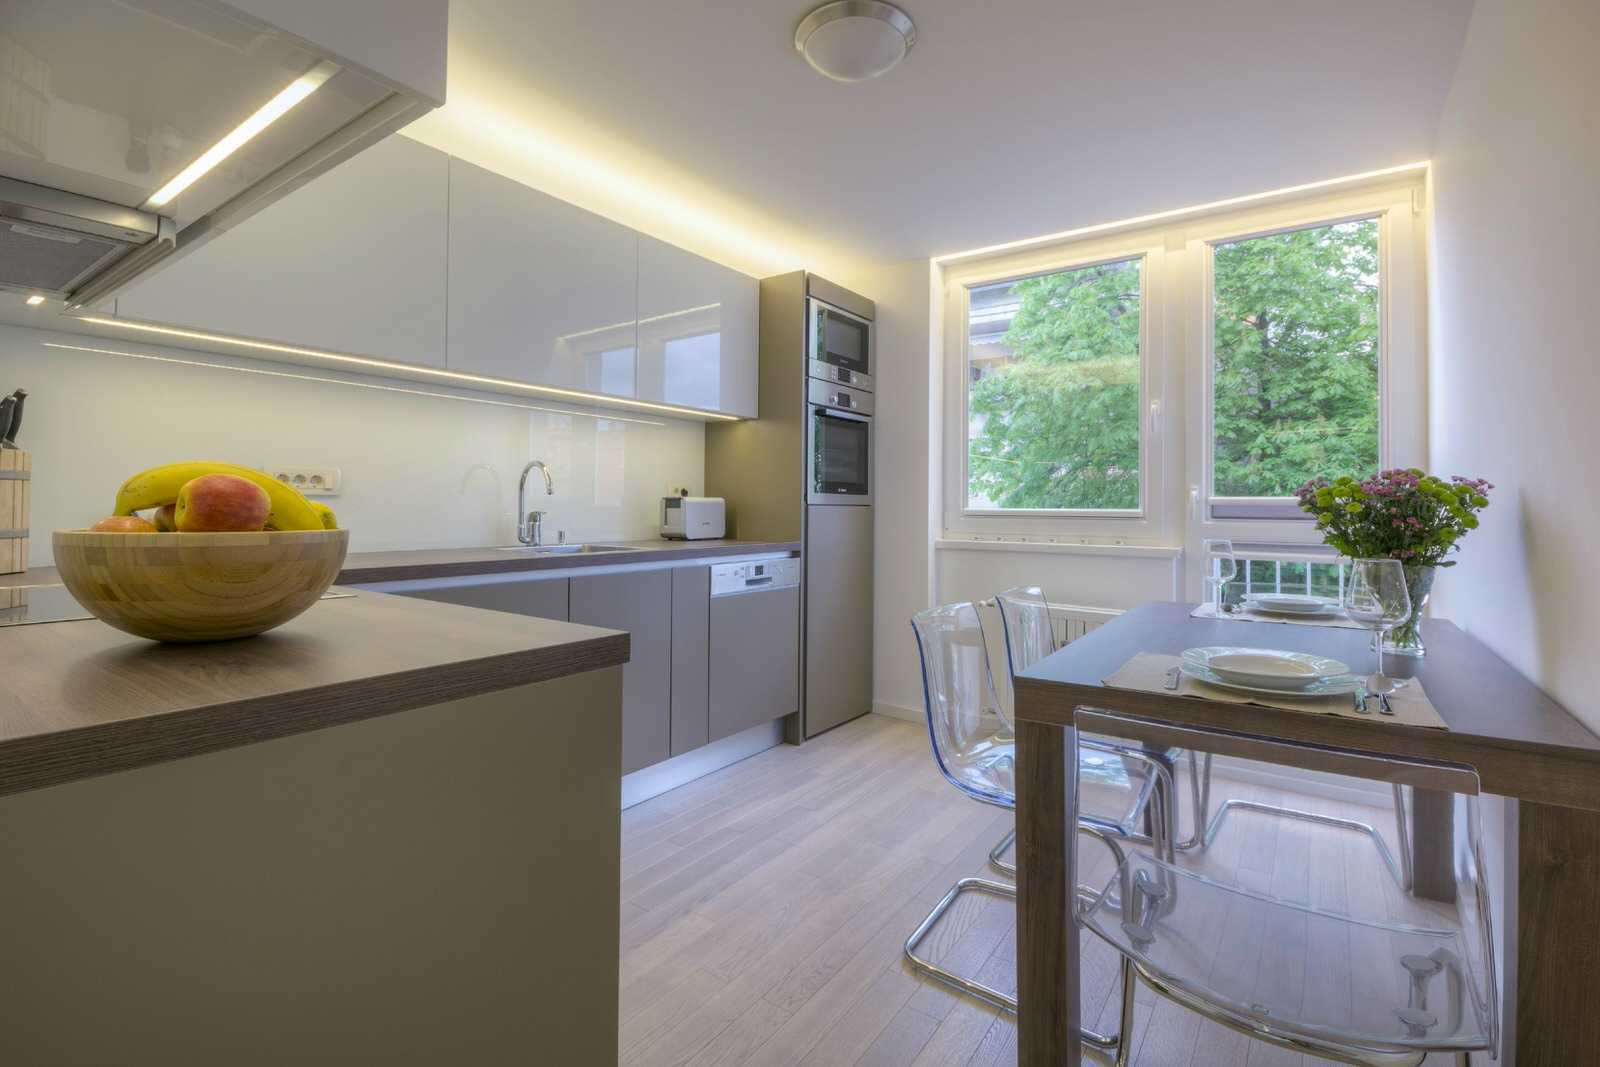 Have breakfast in this bright kitchen.